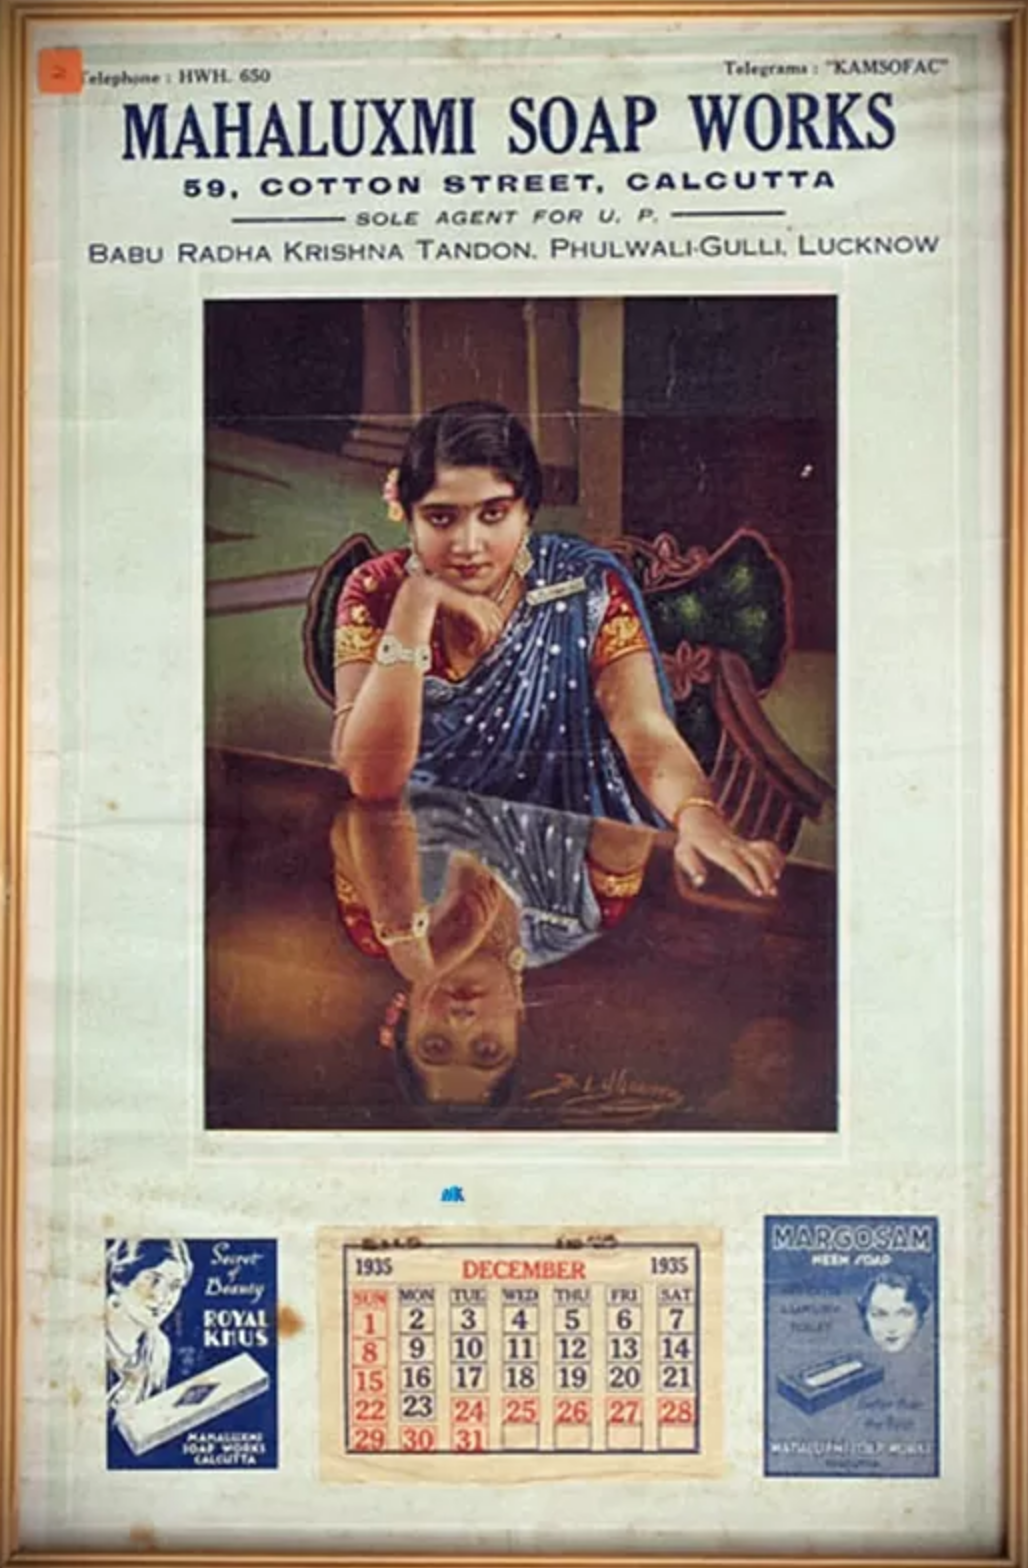 photograph of an advertisement for soap with a photograph of an Indian woman sitting at a table